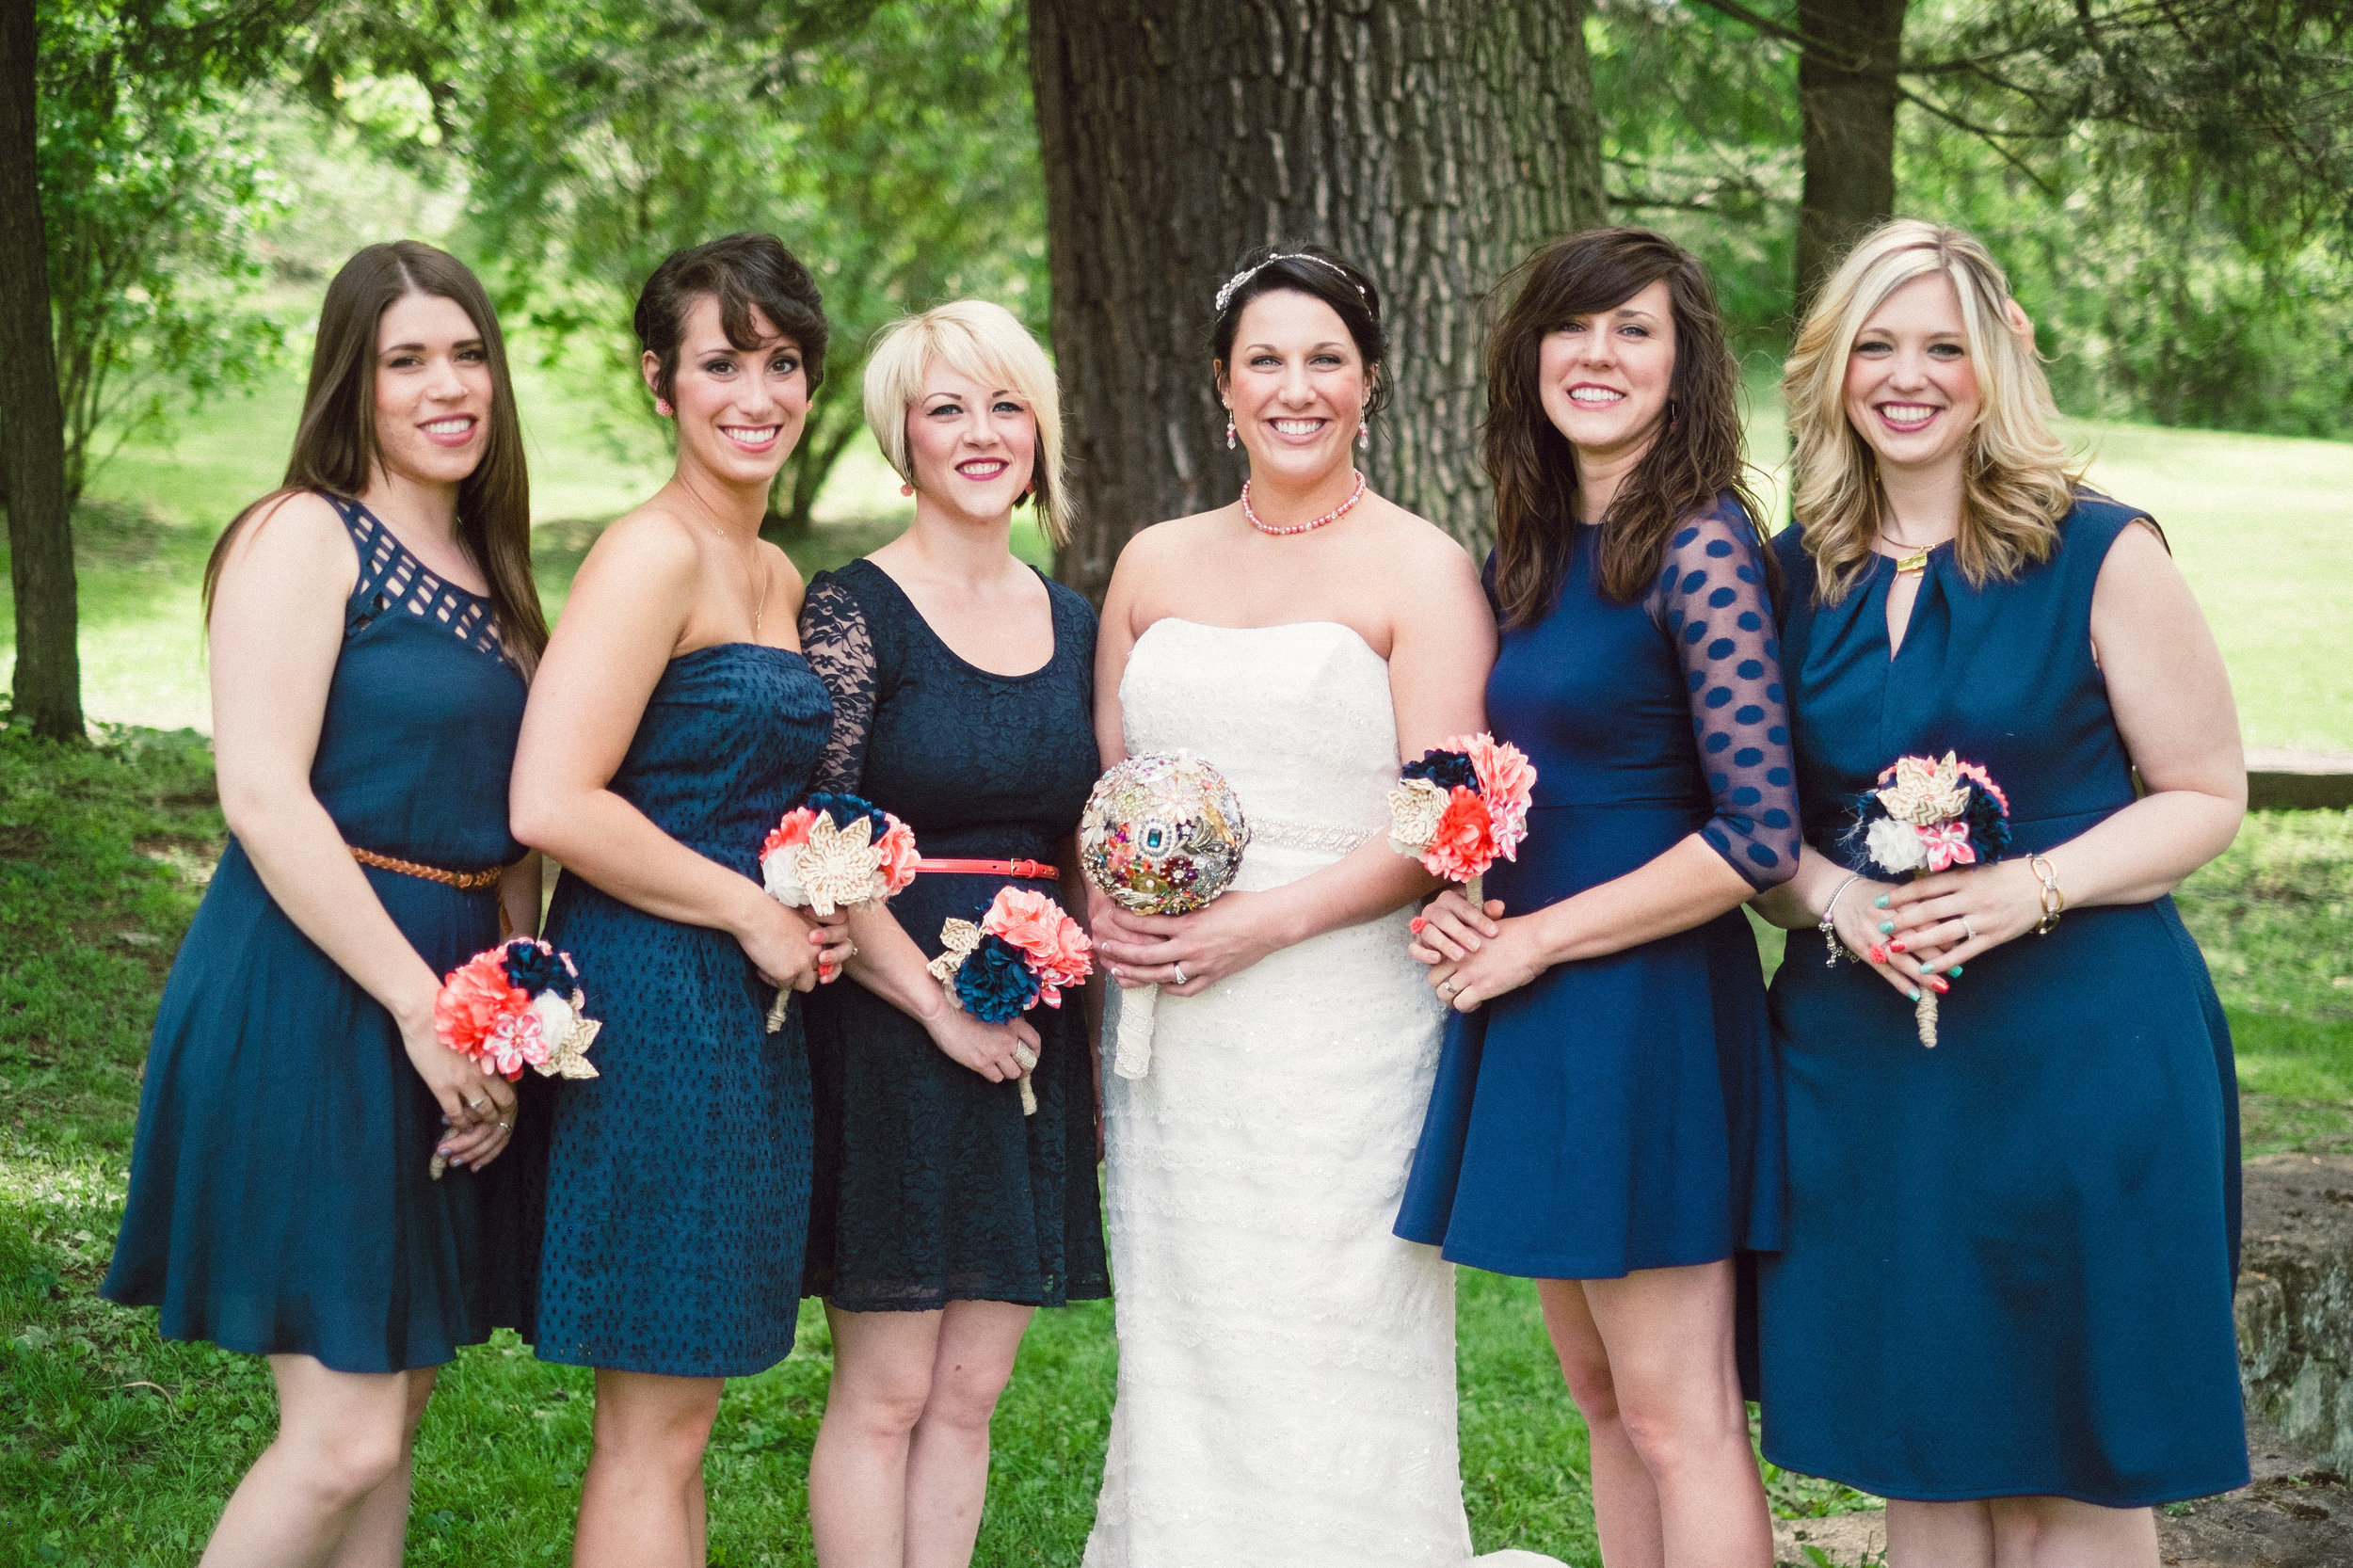 PennsylvaniaWeddingPhotographer-192.jpg